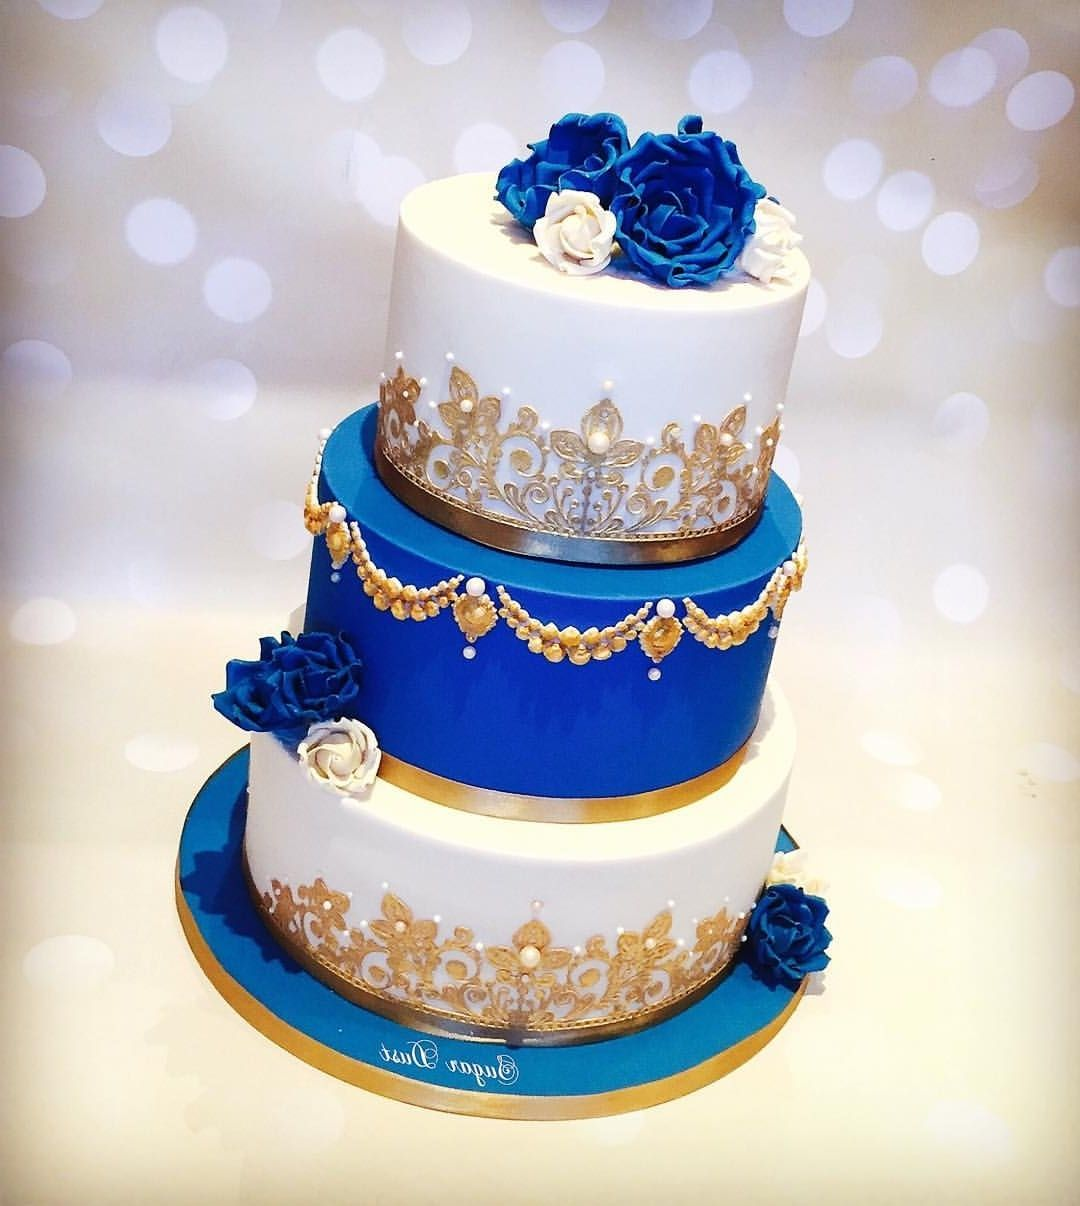 Wedding Cakes Royal Blue And Gold       Wedding jewelry     Wedding Cakes Royal Blue And Gold